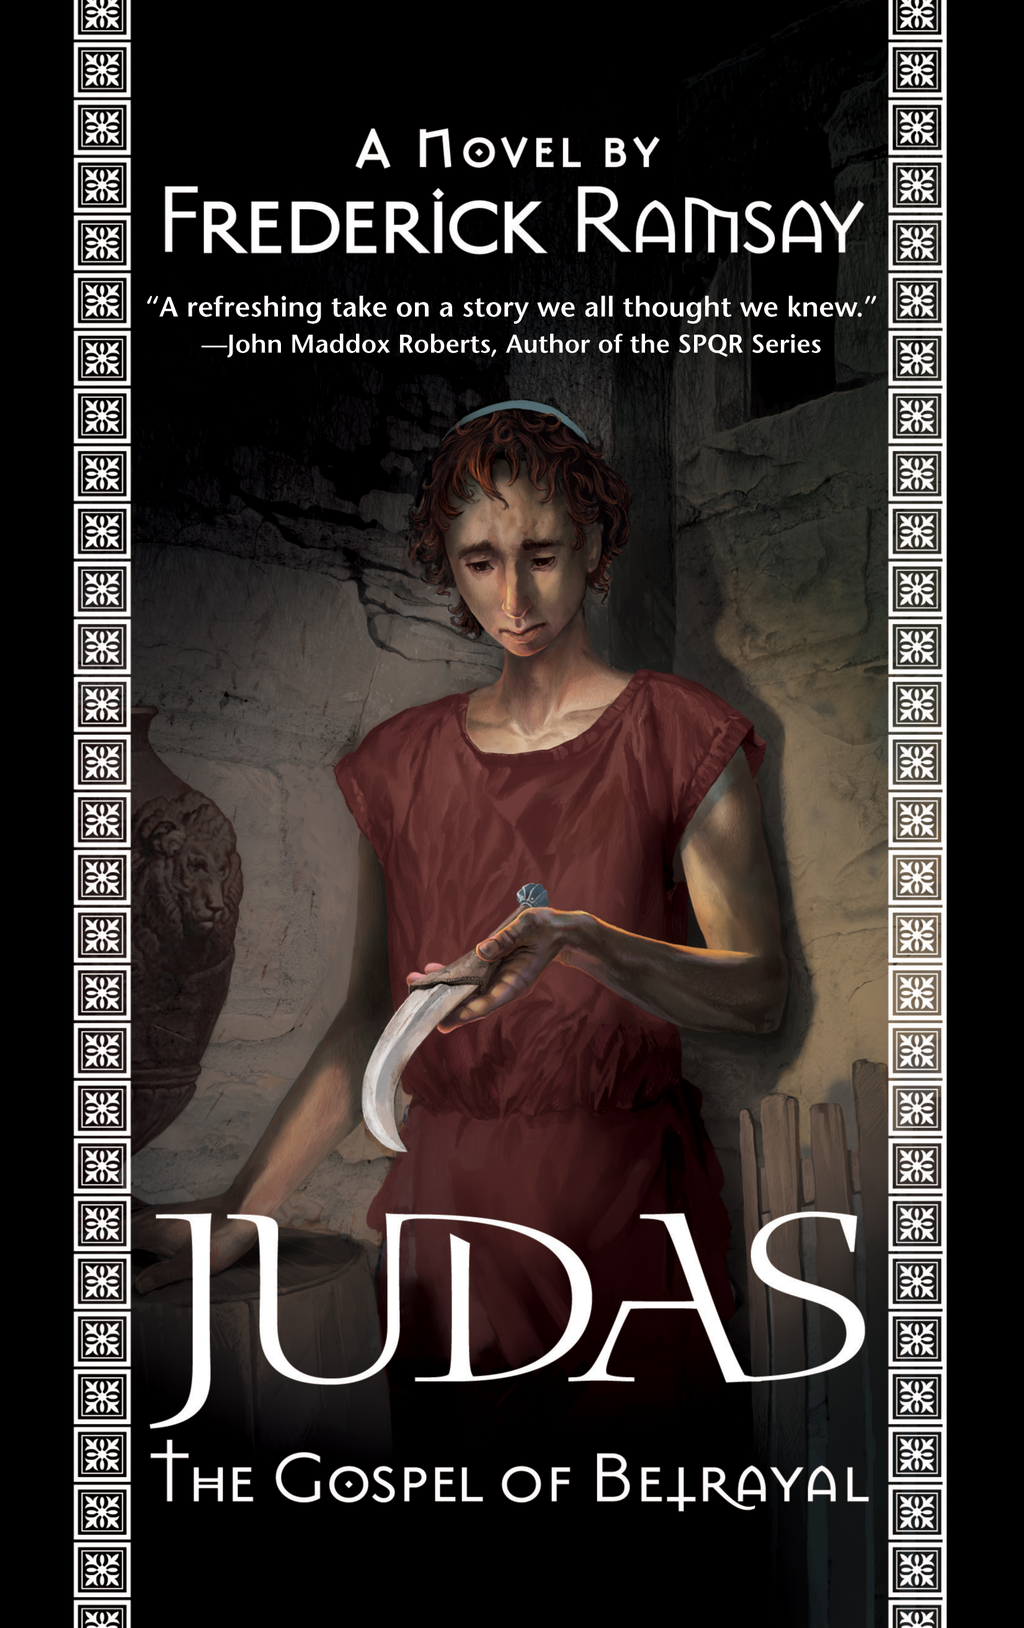 Judas: The Gospel of Betrayal